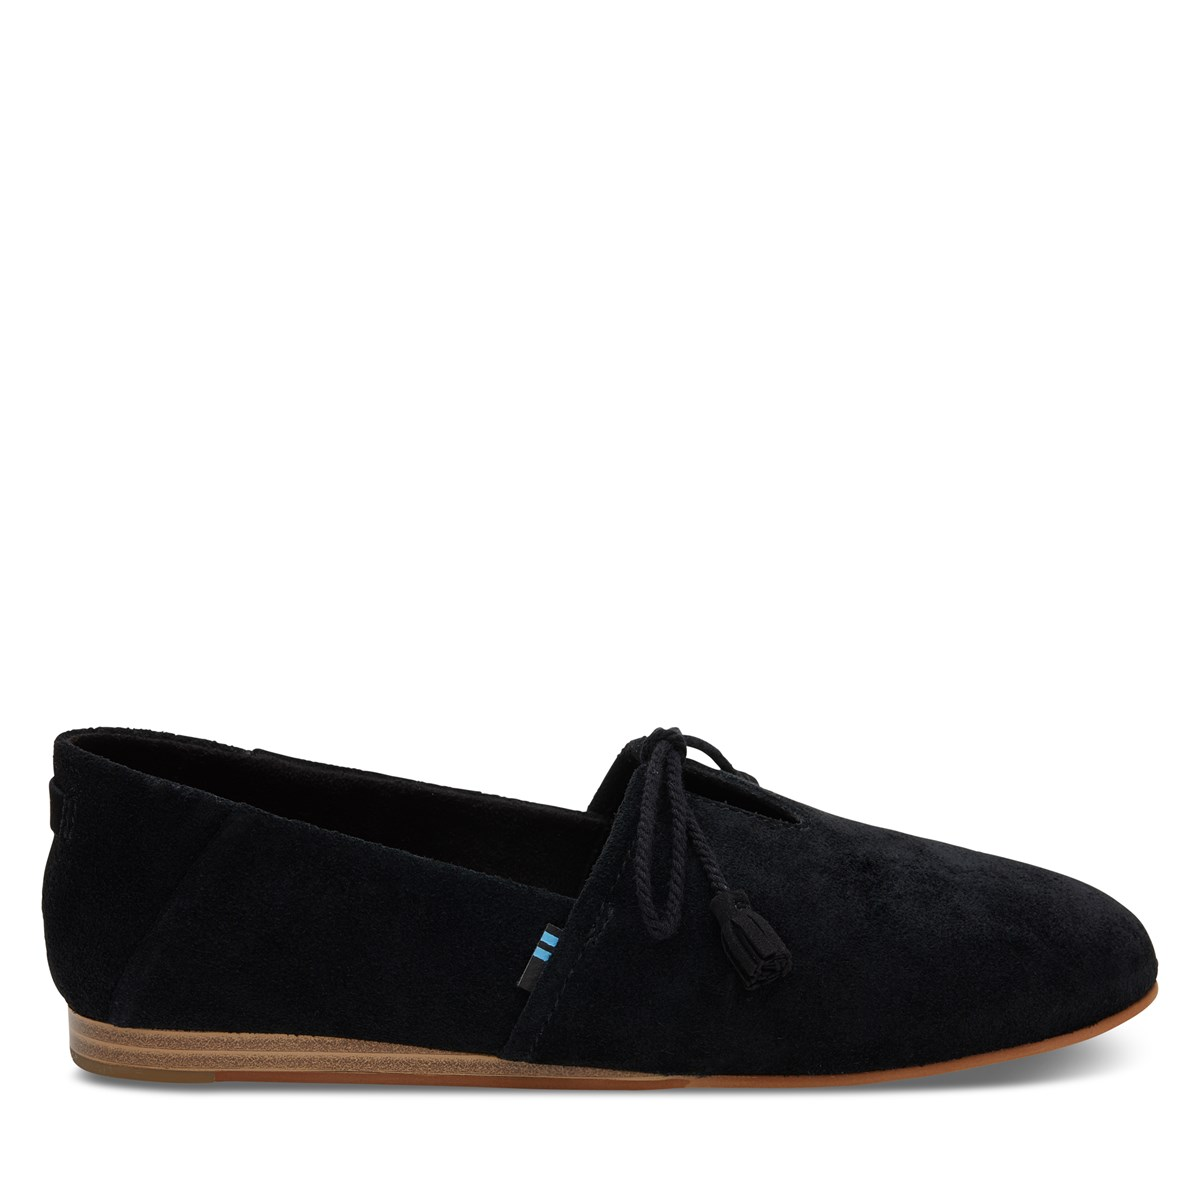 Women's Kelli Slip-On in Black